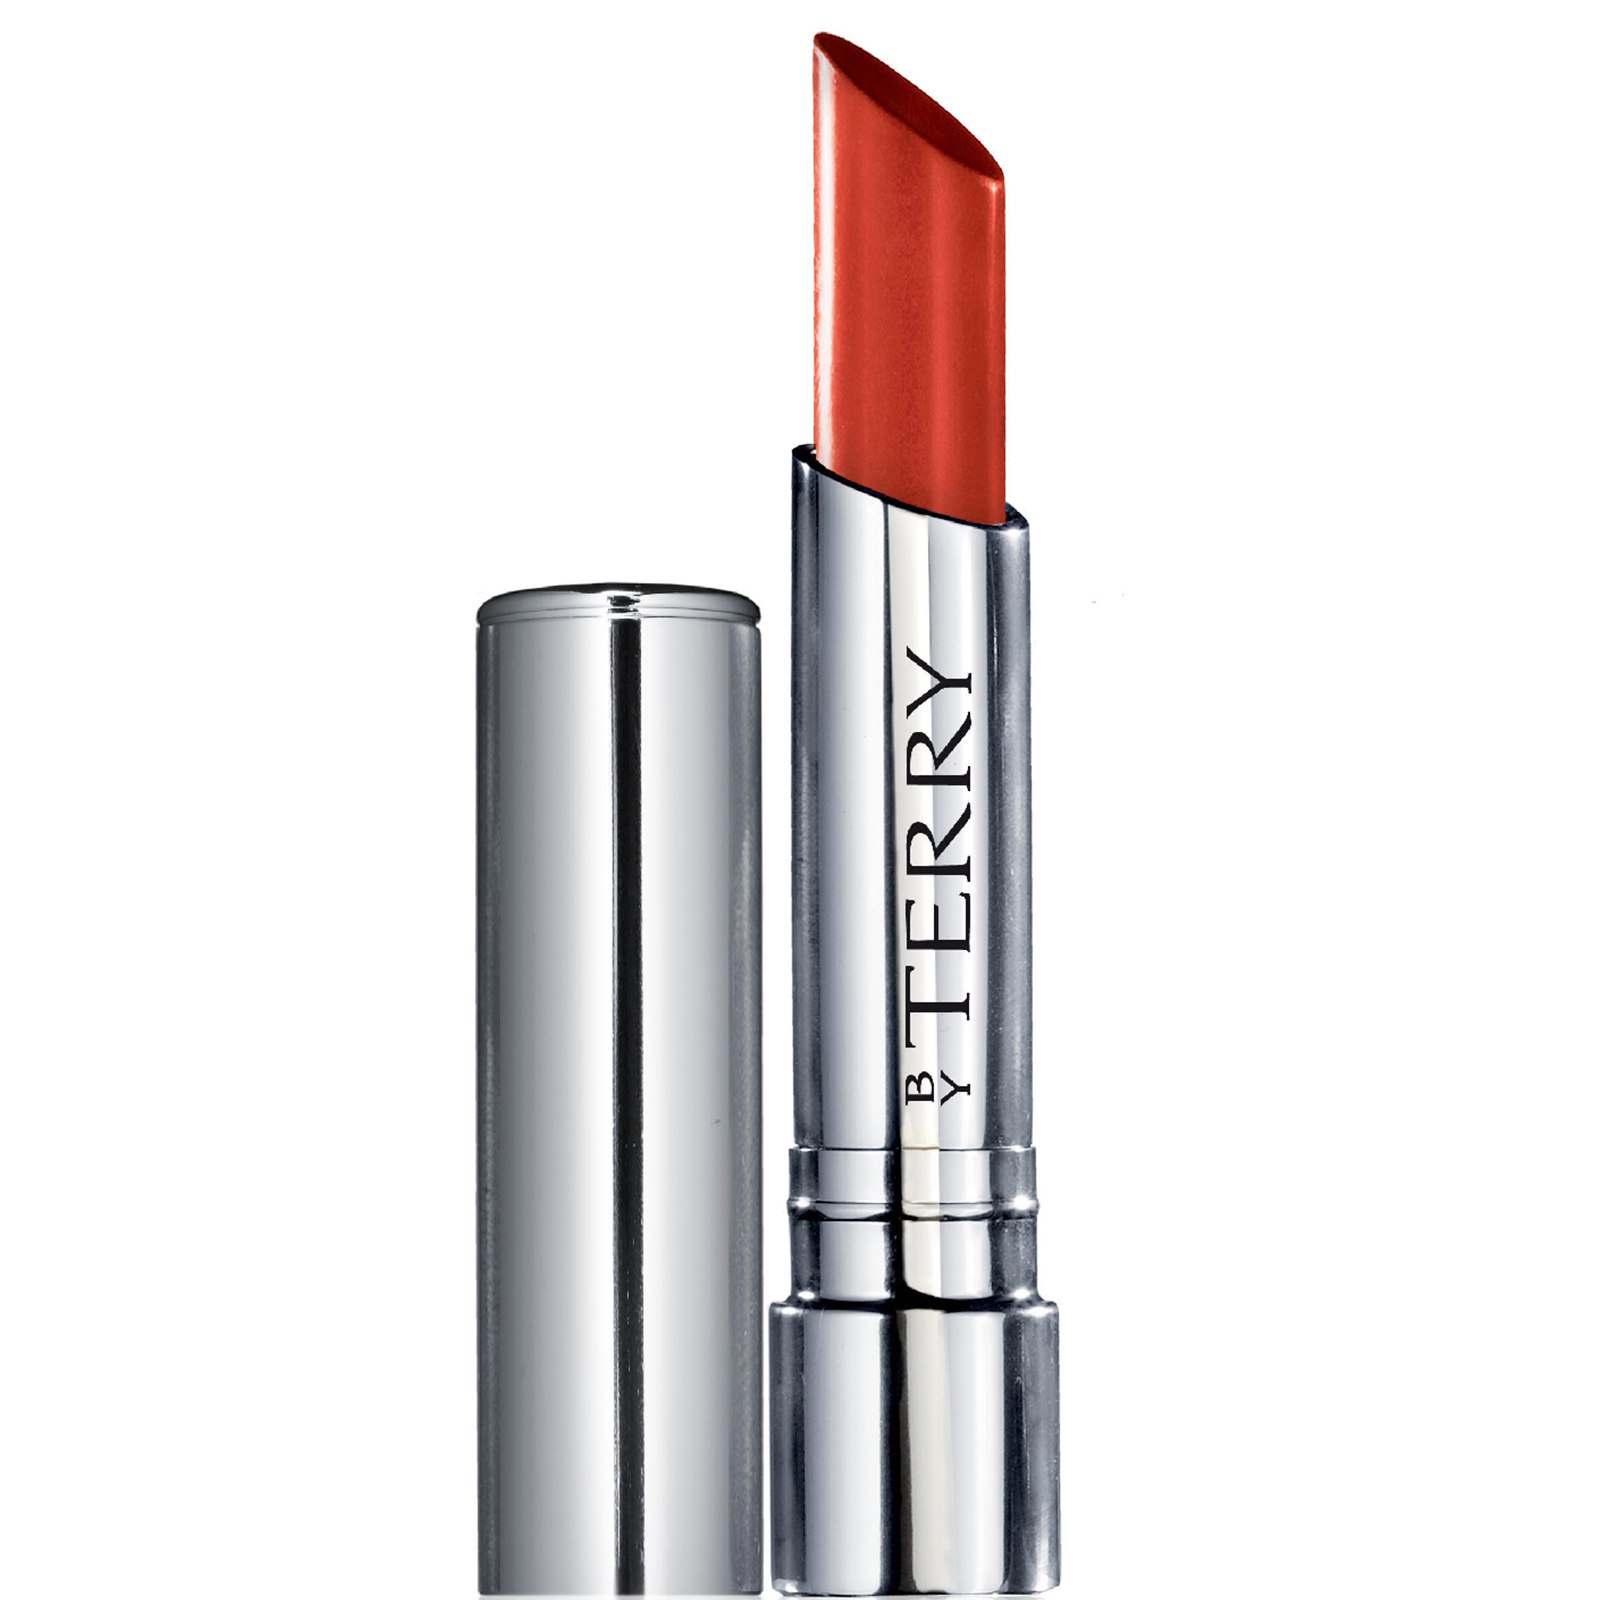 By Terry Hyaluronic Sheer Rouge Lipstick 3g (Various Shades) - 8. Hot Spot